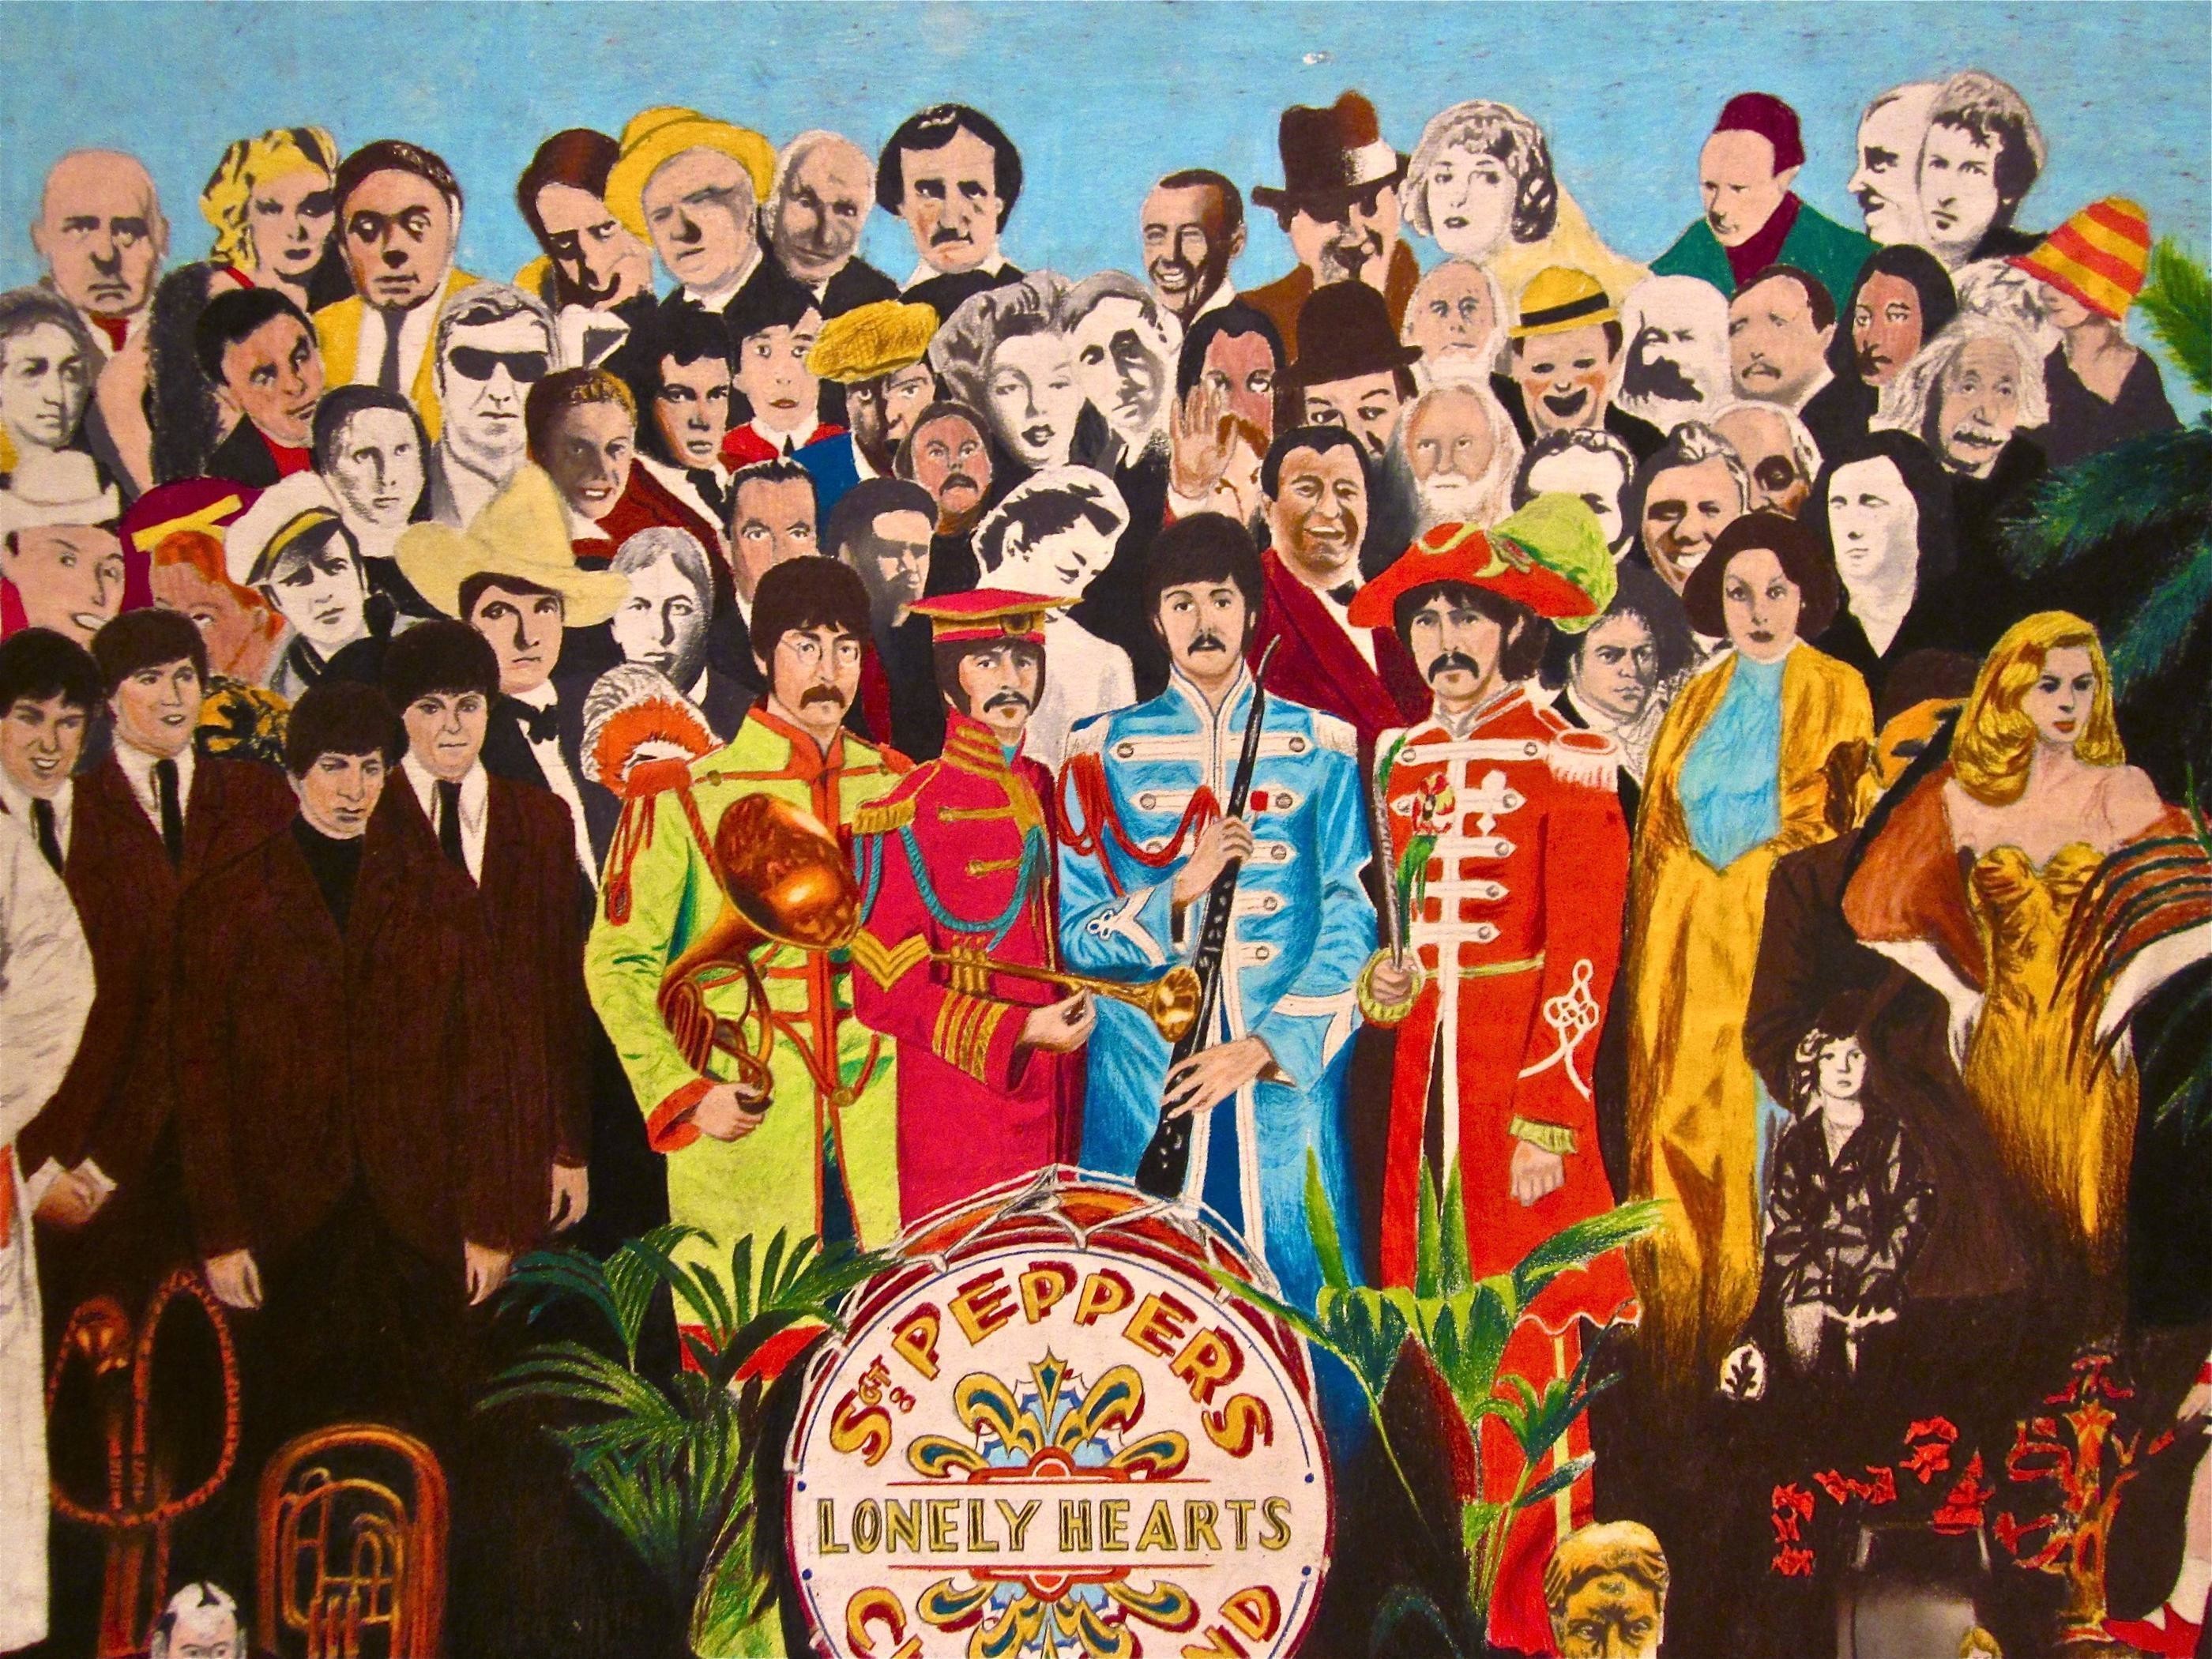 Обои The beatles, sgt. peppers lonely hearts club band, yellow submarine. Музыка foto 16